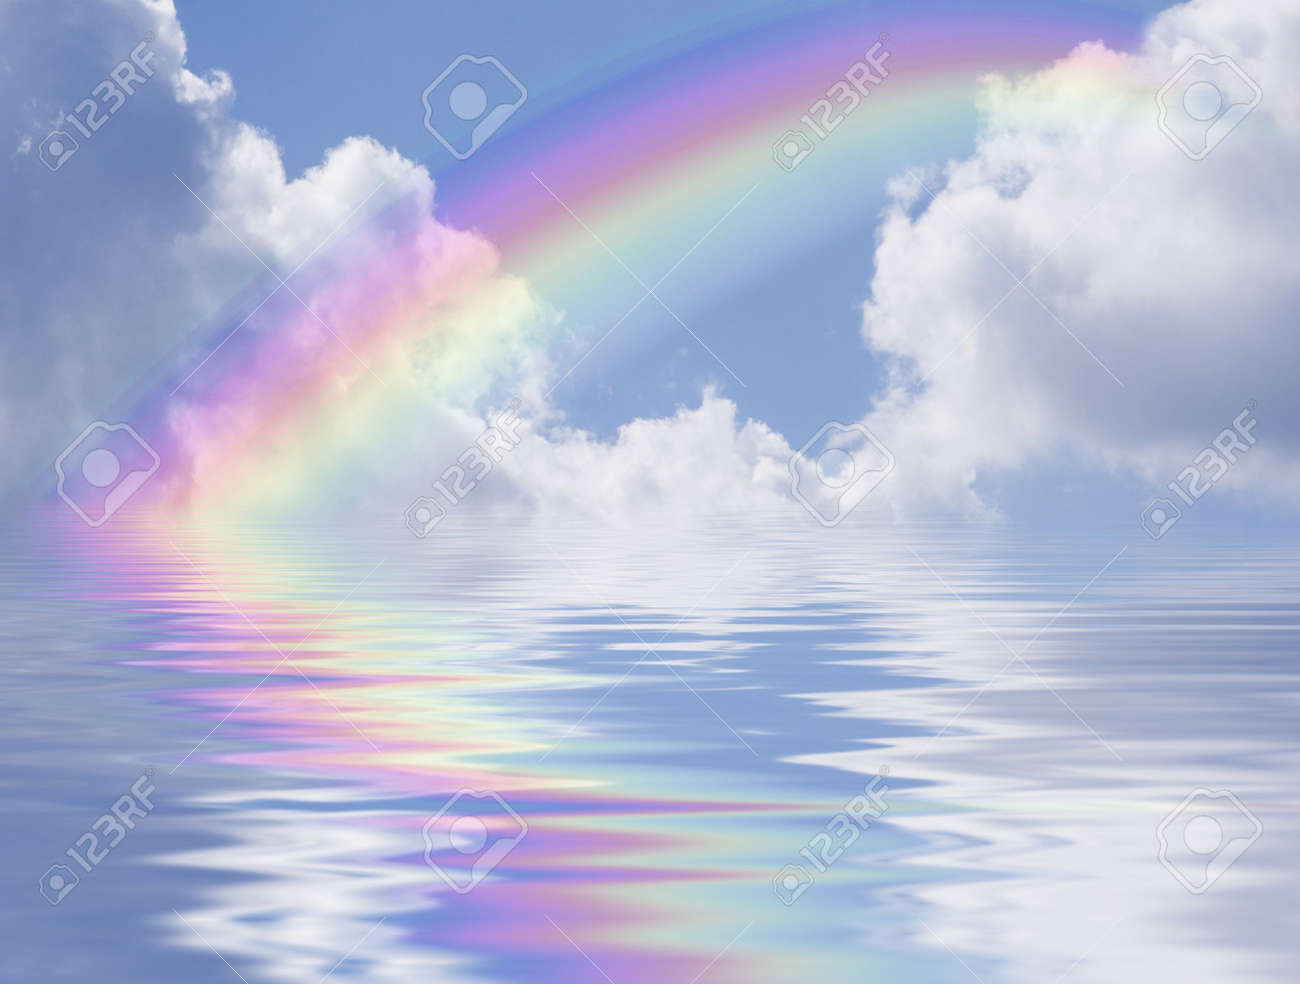 blue sky with rainbow and clouds reflected in the water stock photo